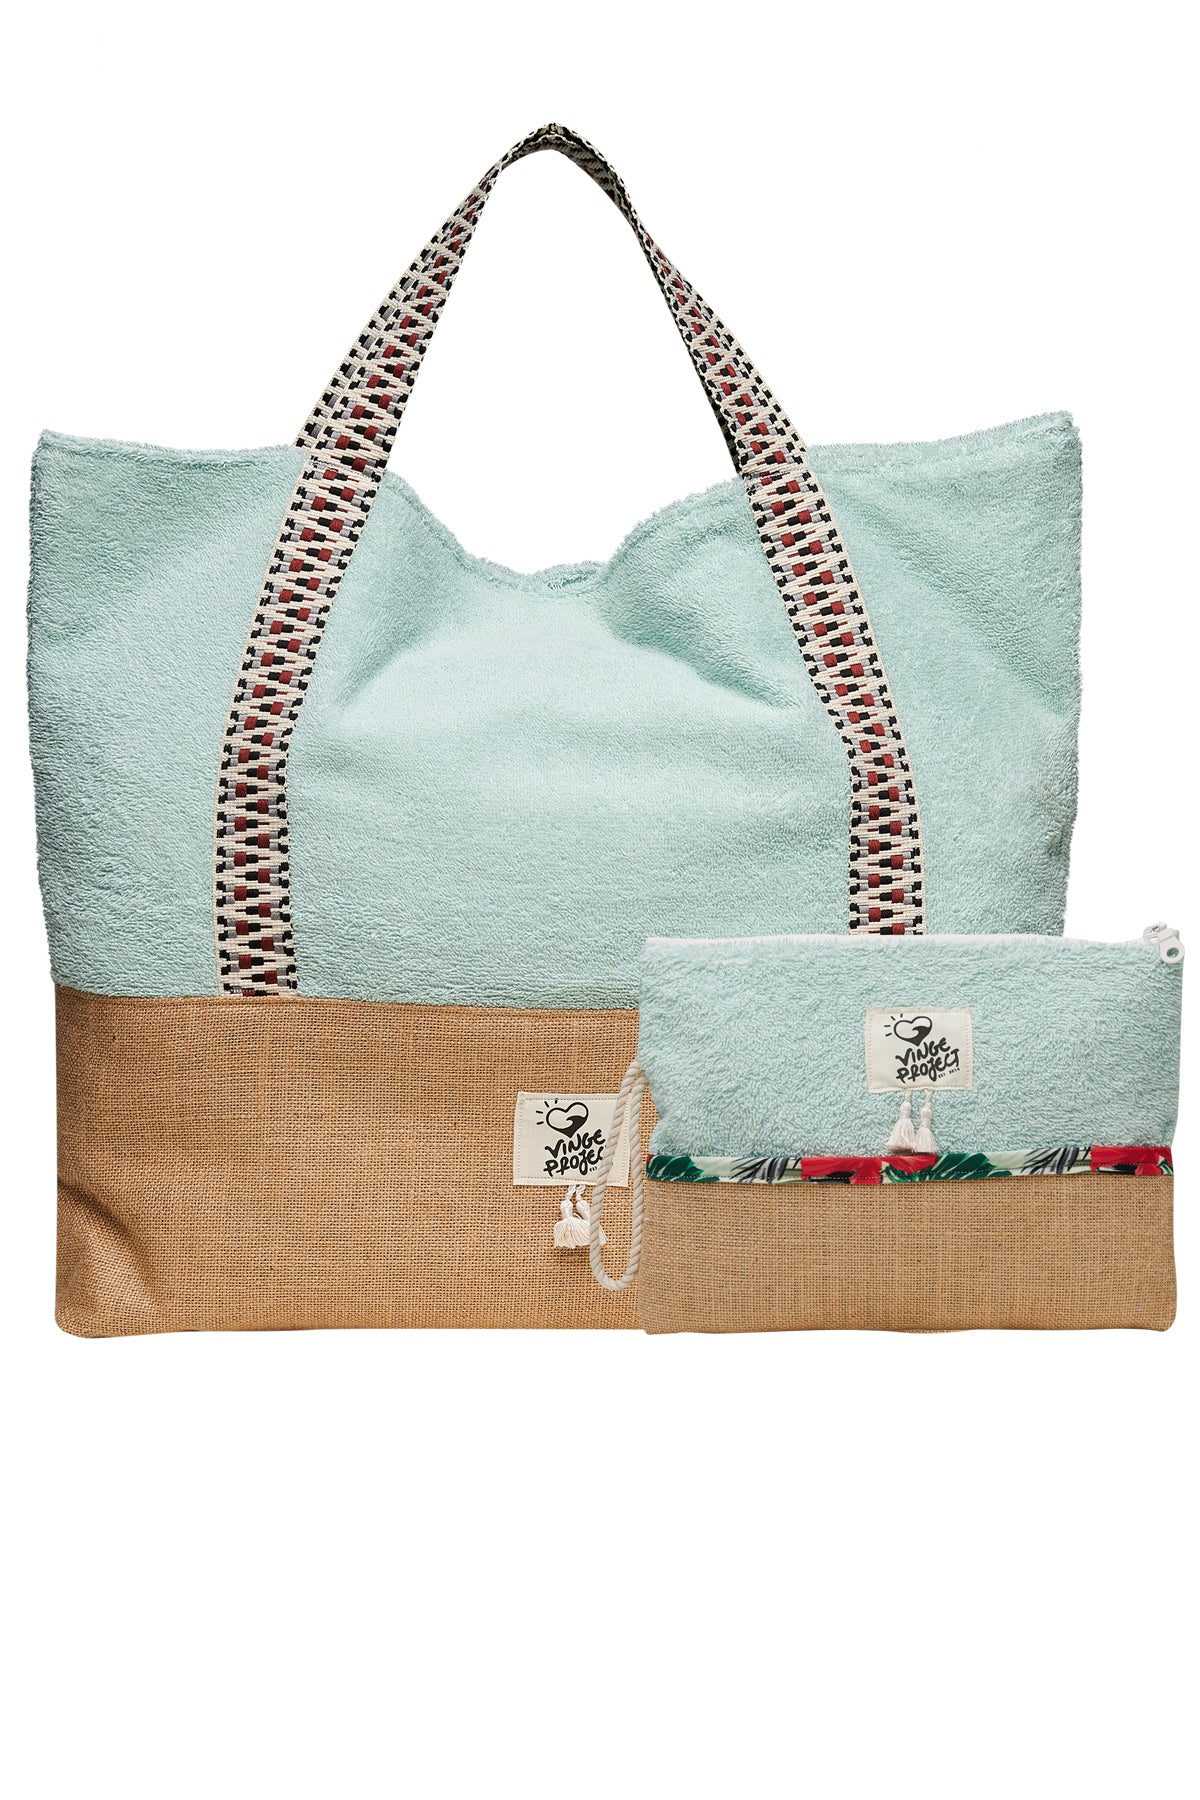 Sailor Beach Bag & Waterproof Clutch